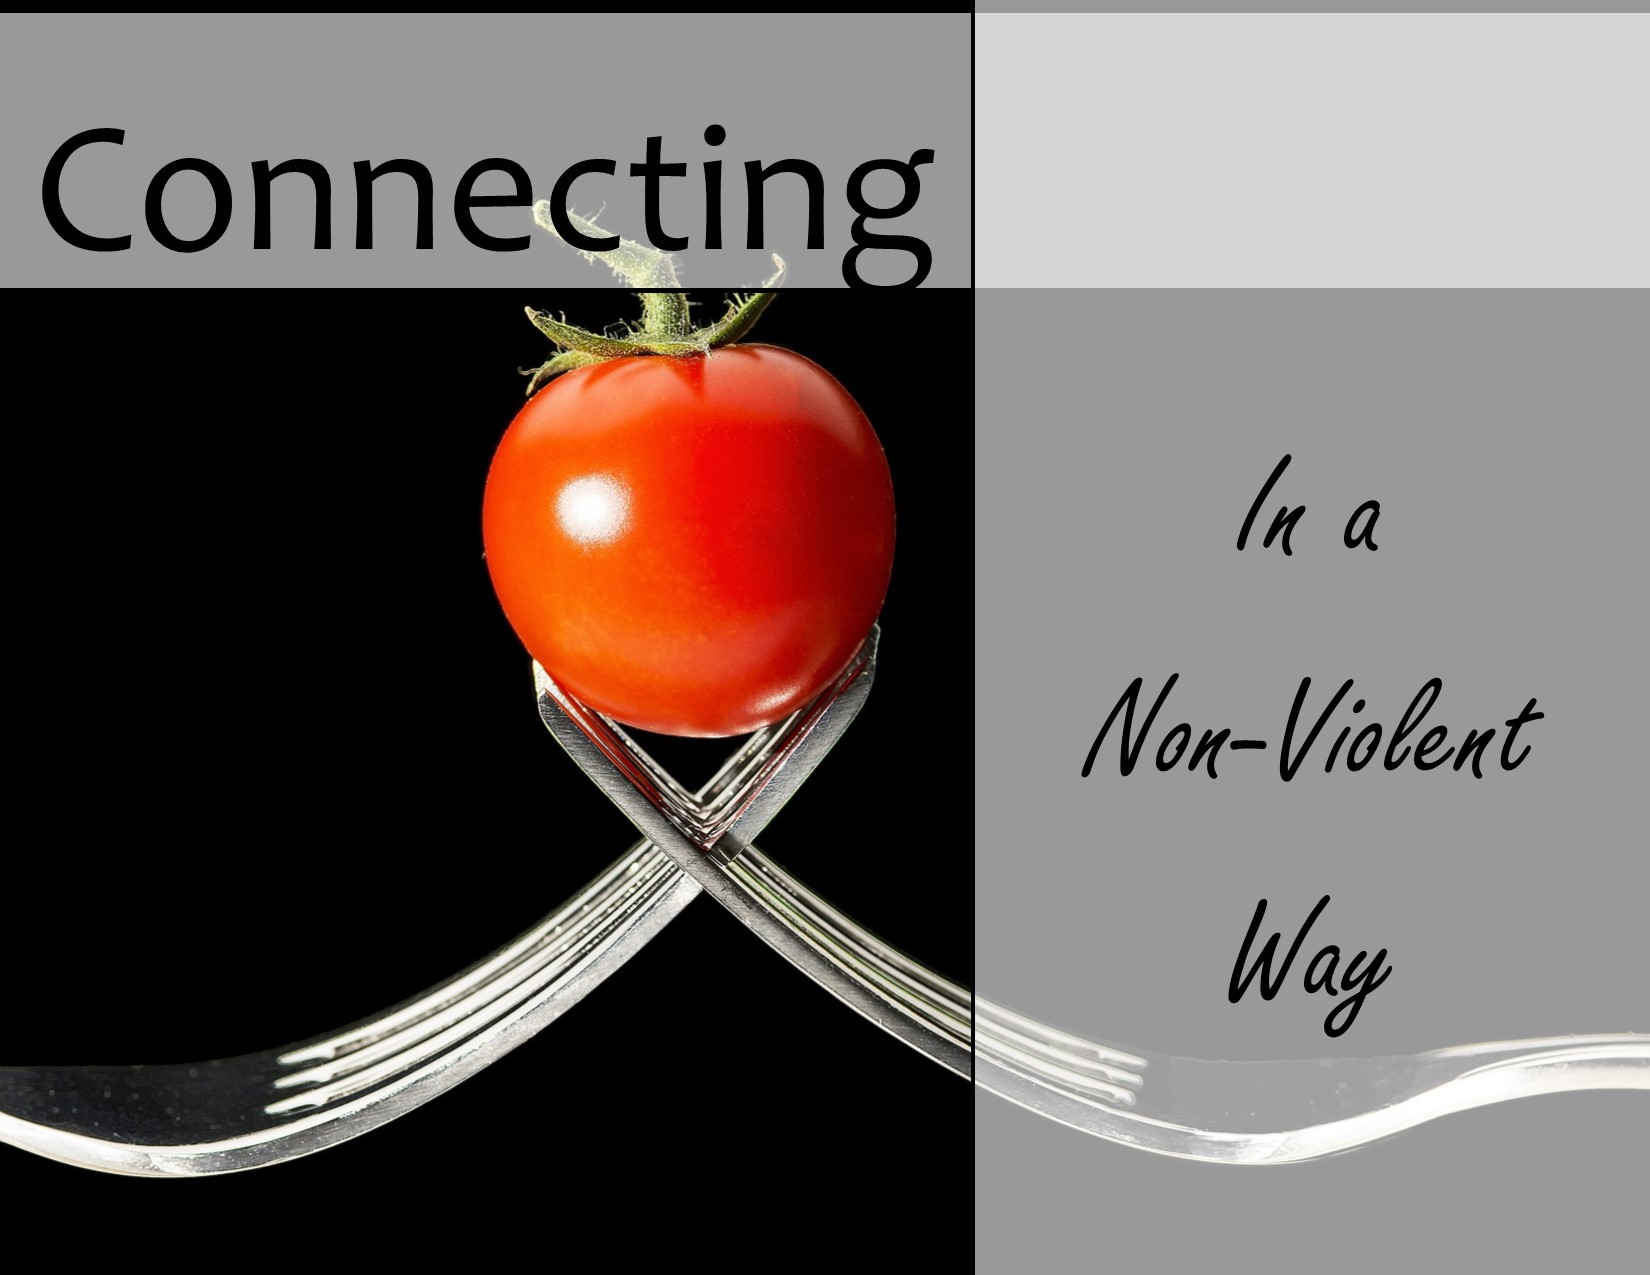 Connecting NonViolent